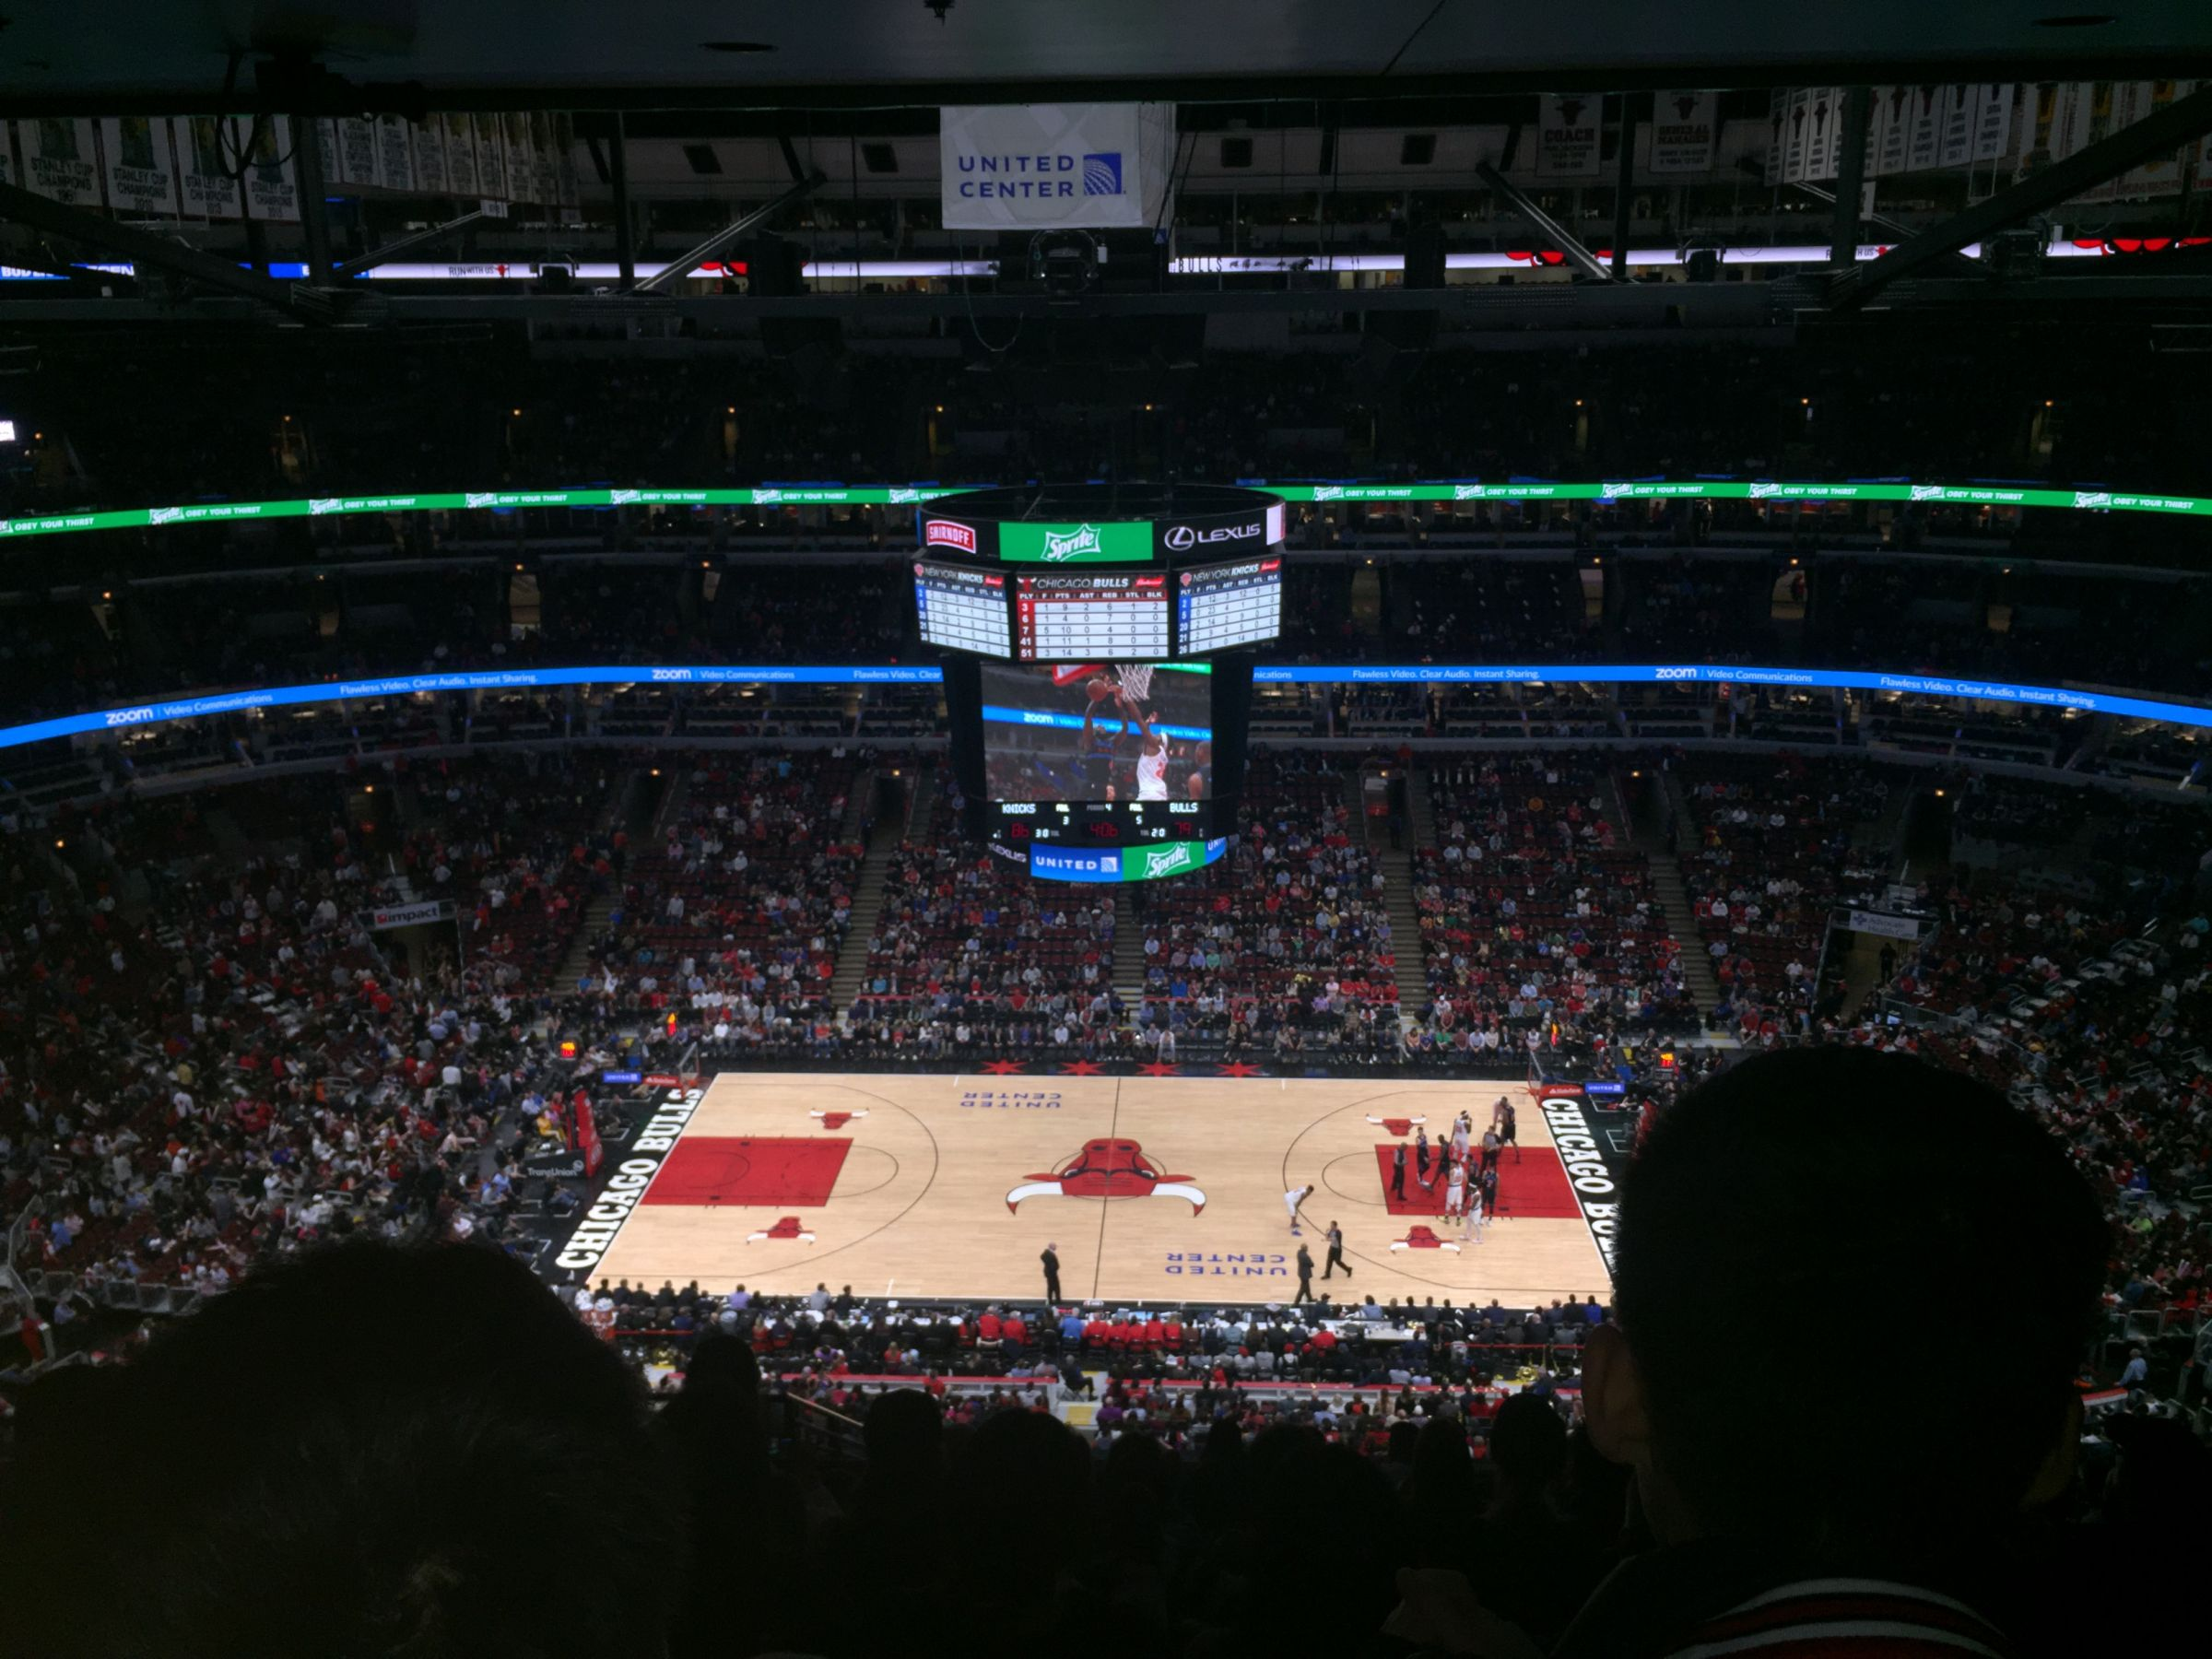 Chicago Bulls Seat View for United Center Standing Room Only, Row General